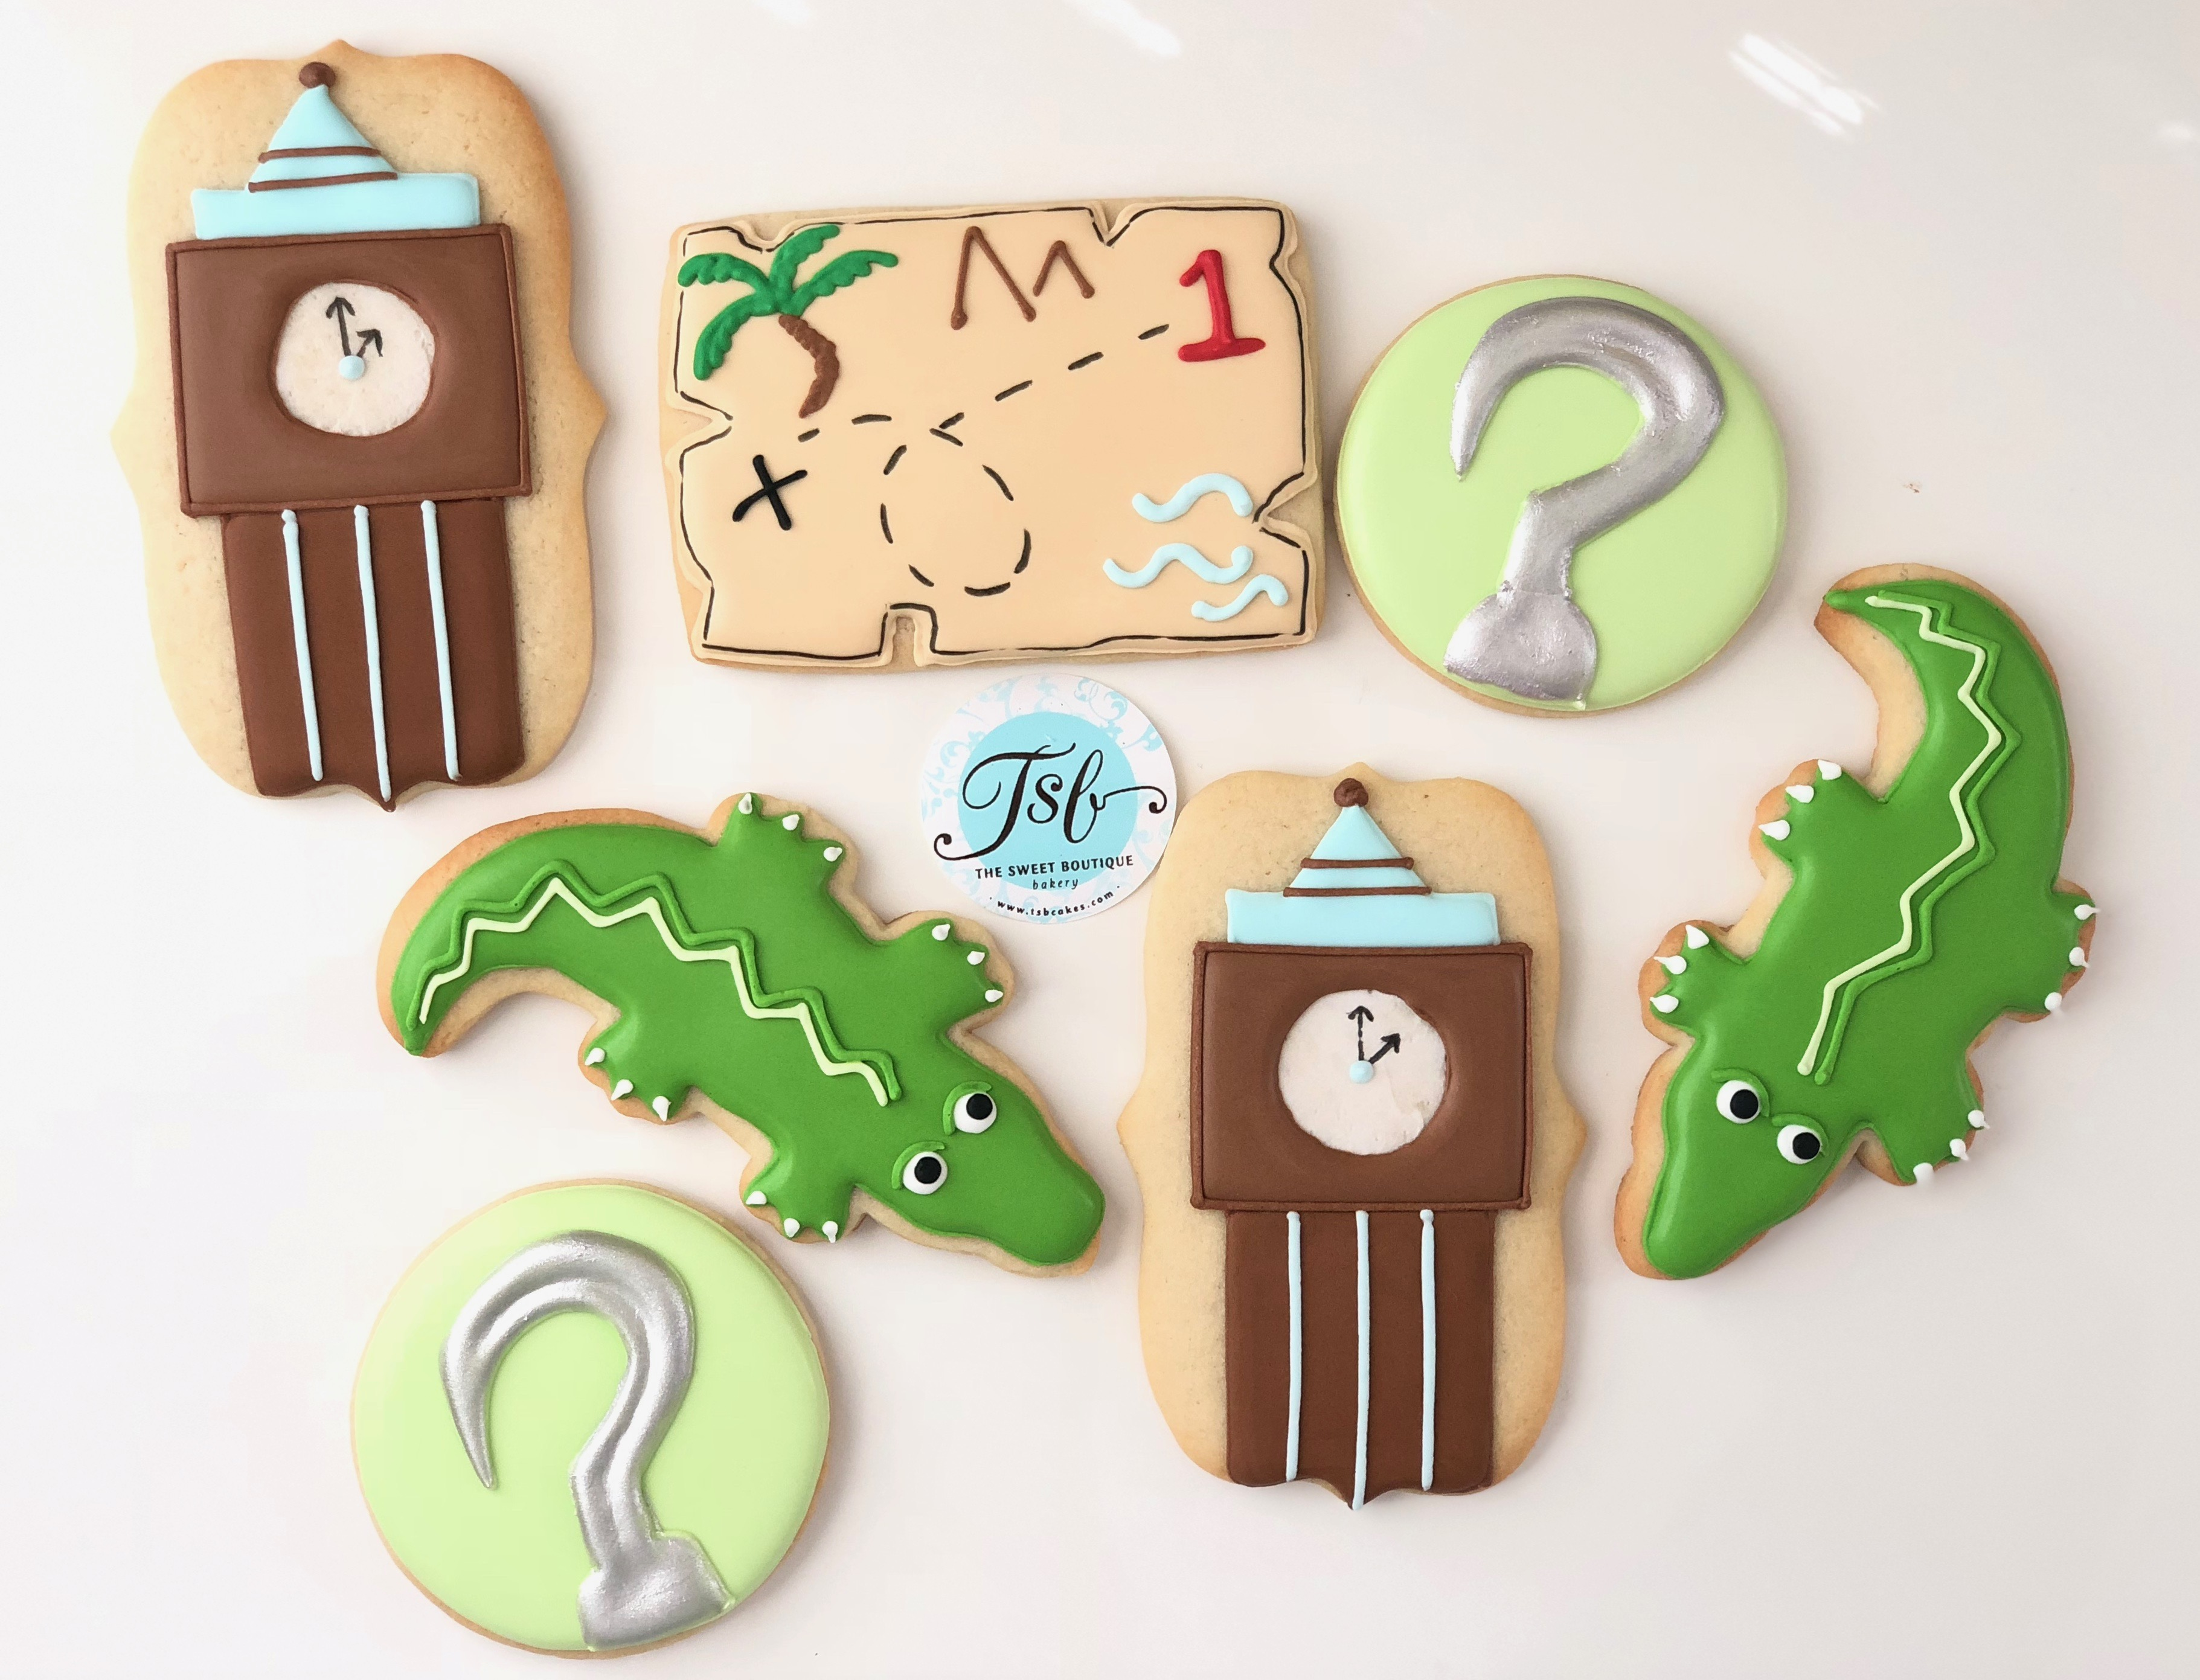 Peter Pan Cookies